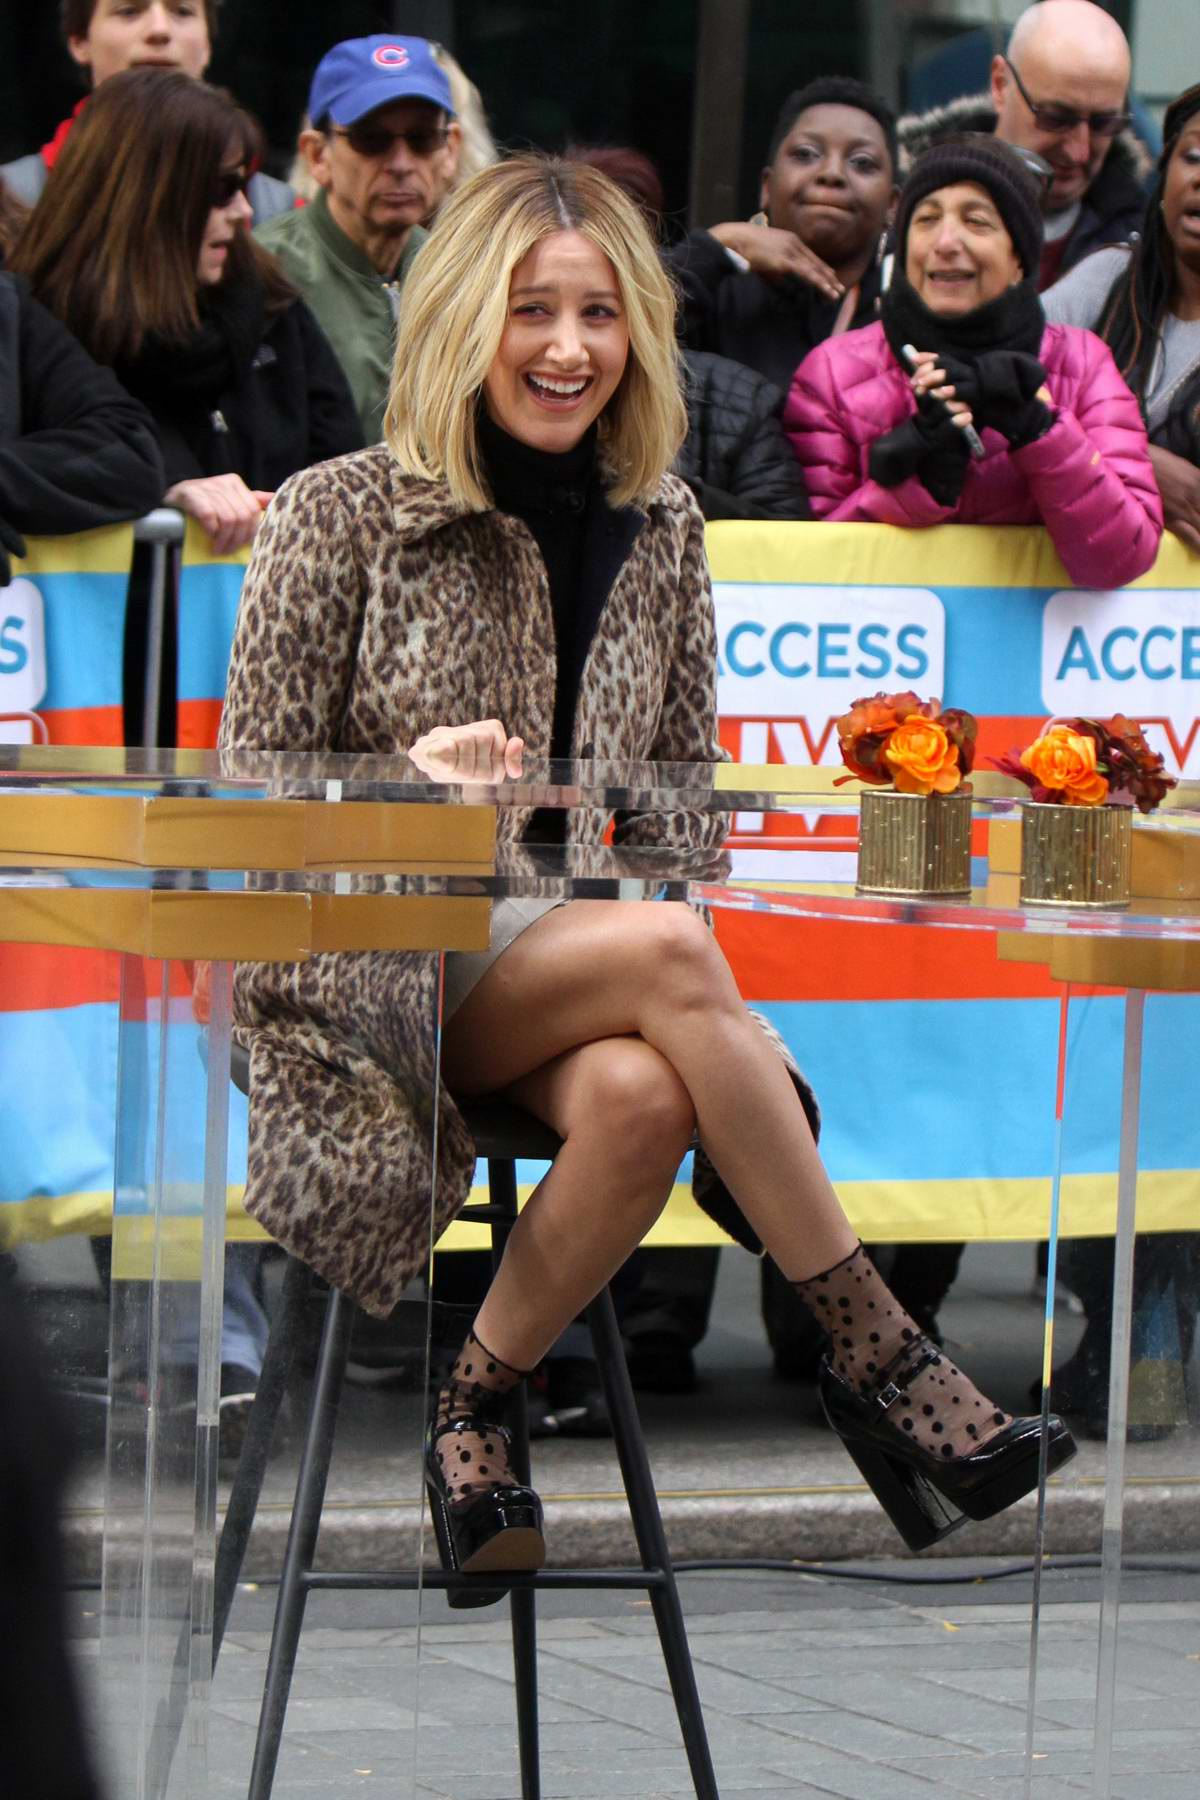 Ashley Tisdale wears leopard print at the 'Access Live' show at the Rockefeller Plaza in Midtown Manhattan, New York City